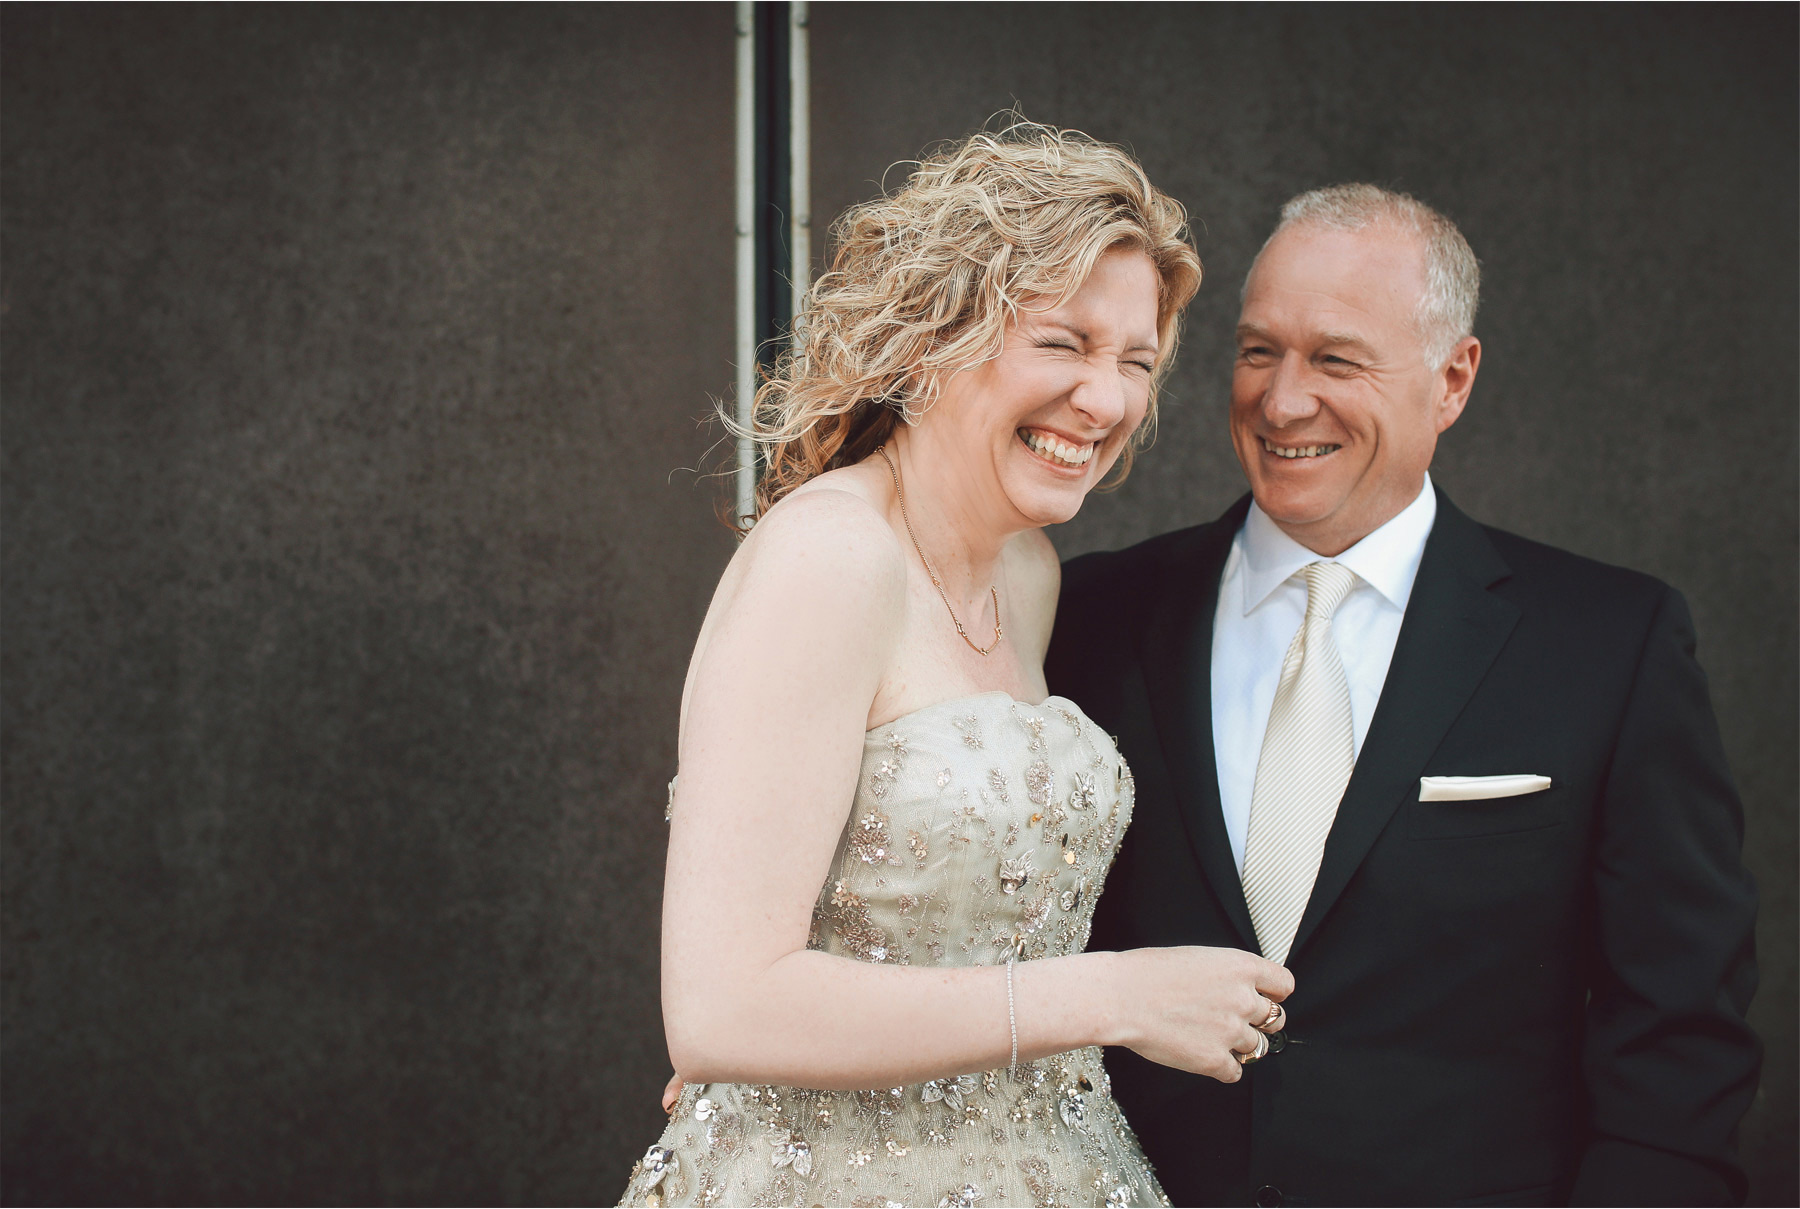 02-Minneapolis-Minnesota-Wedding-Photographer-by-Andrew-Vick-Photography-Spring-Downtown-Bride-Groom-Laughter-Vintage-Dannette-and-Darren.jpg